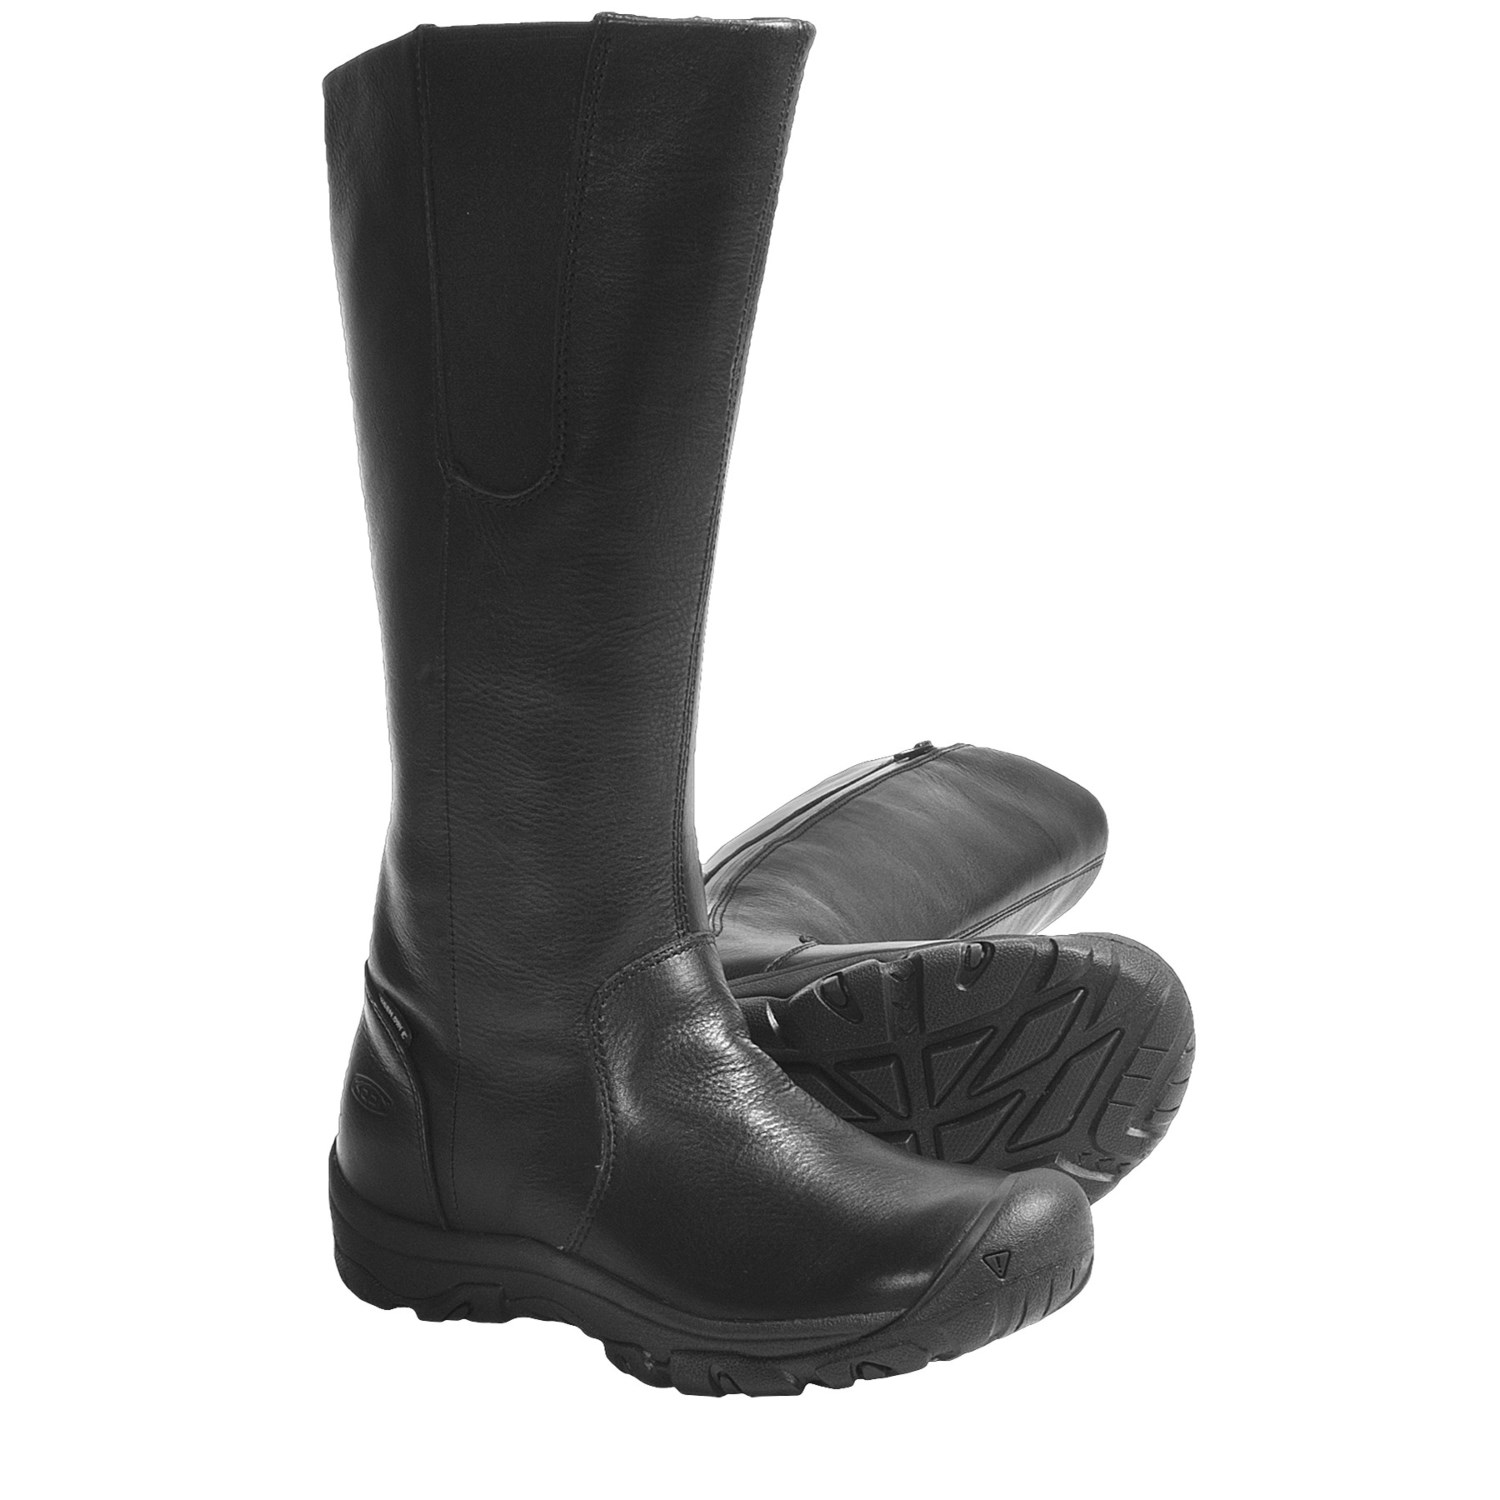 New S Waterproof Winter Boots Clearance - 28 Images - Womens Waterproof Snow Boots Clearance ...